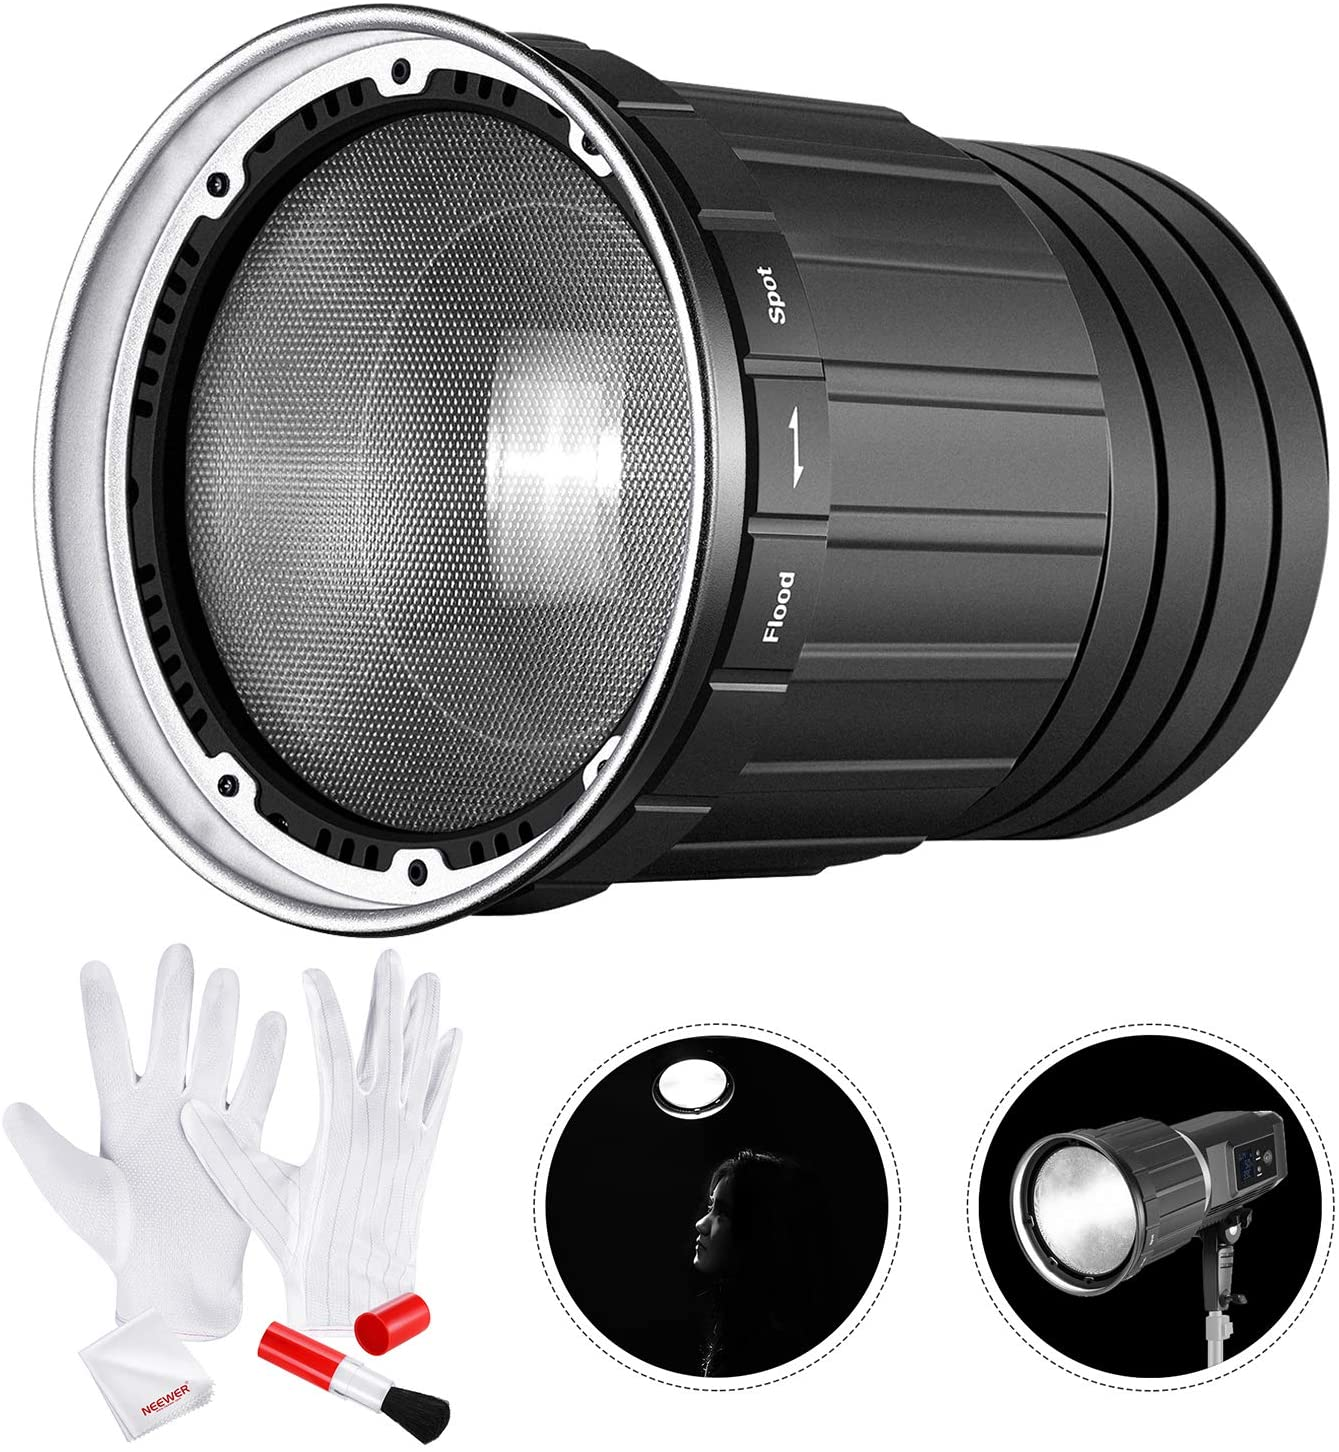 Neewer Fresnel 2X Lens Mount with Camera Cleaning Kit Compatible with Neewer SL60W SLB60W SL-150W SL-200W Led Light and Other Bowens Mount Continuous Lights